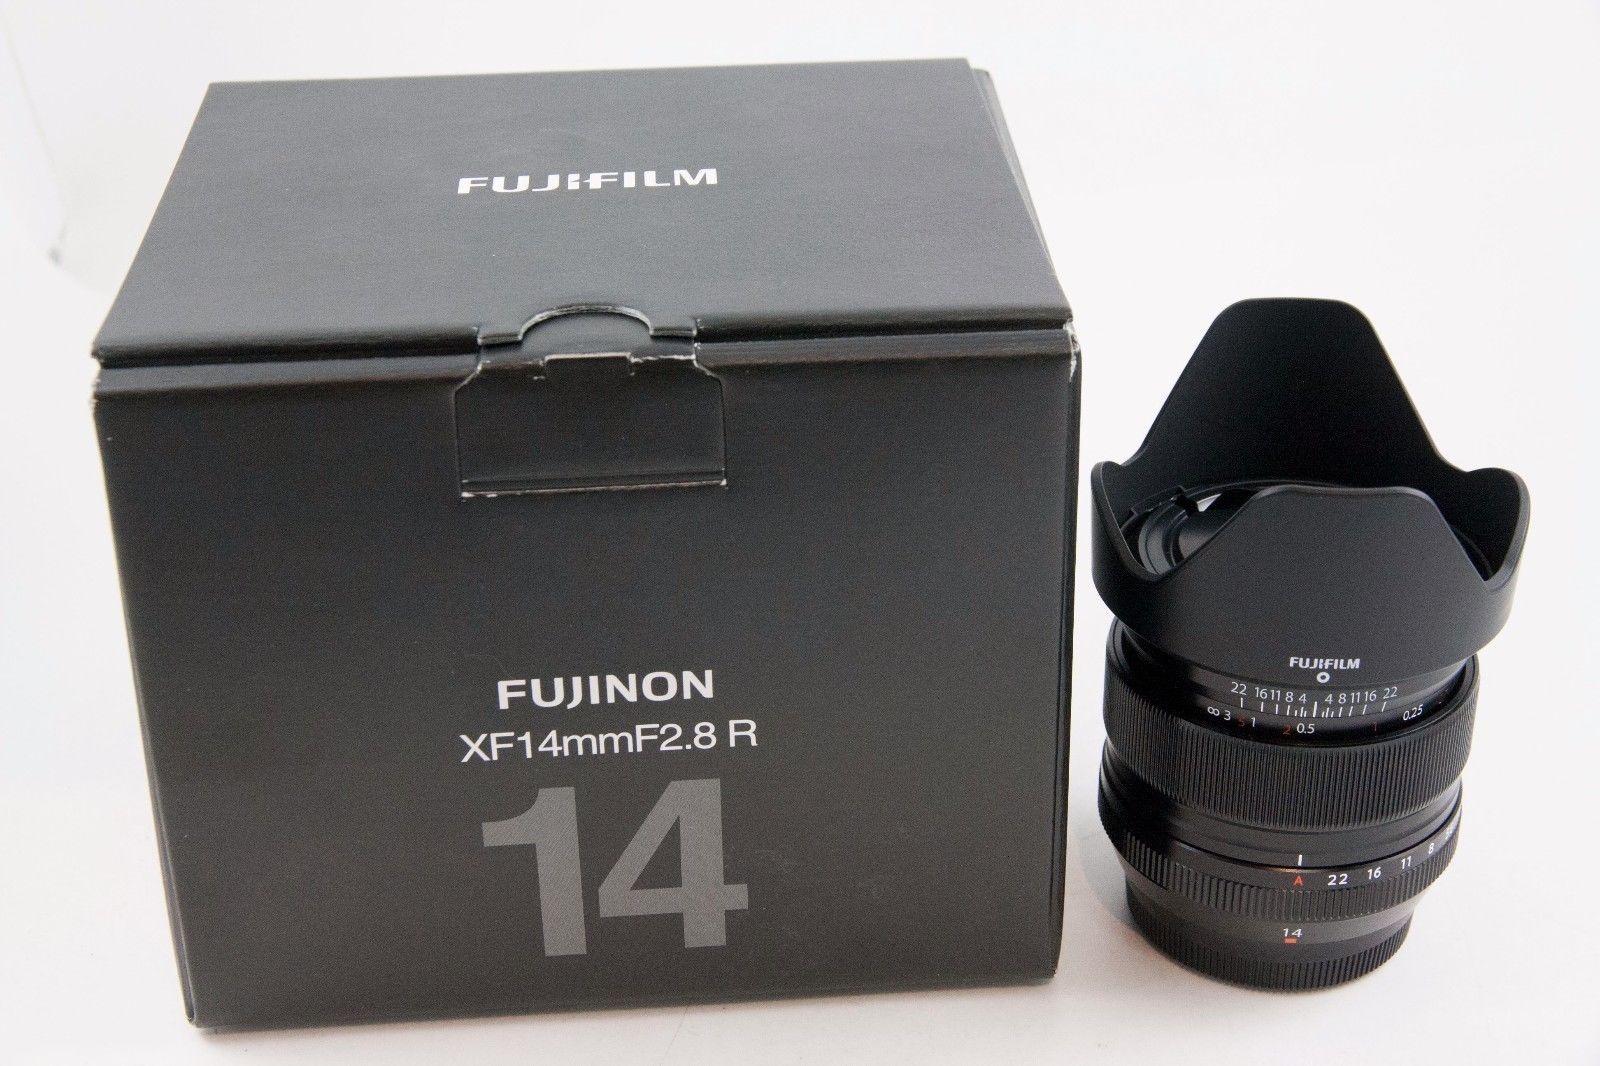 Fujifilm Fujinon Xf 14mm F 2 8 R Super Ebc Lens Stuff To Buy Fujifilm Lens